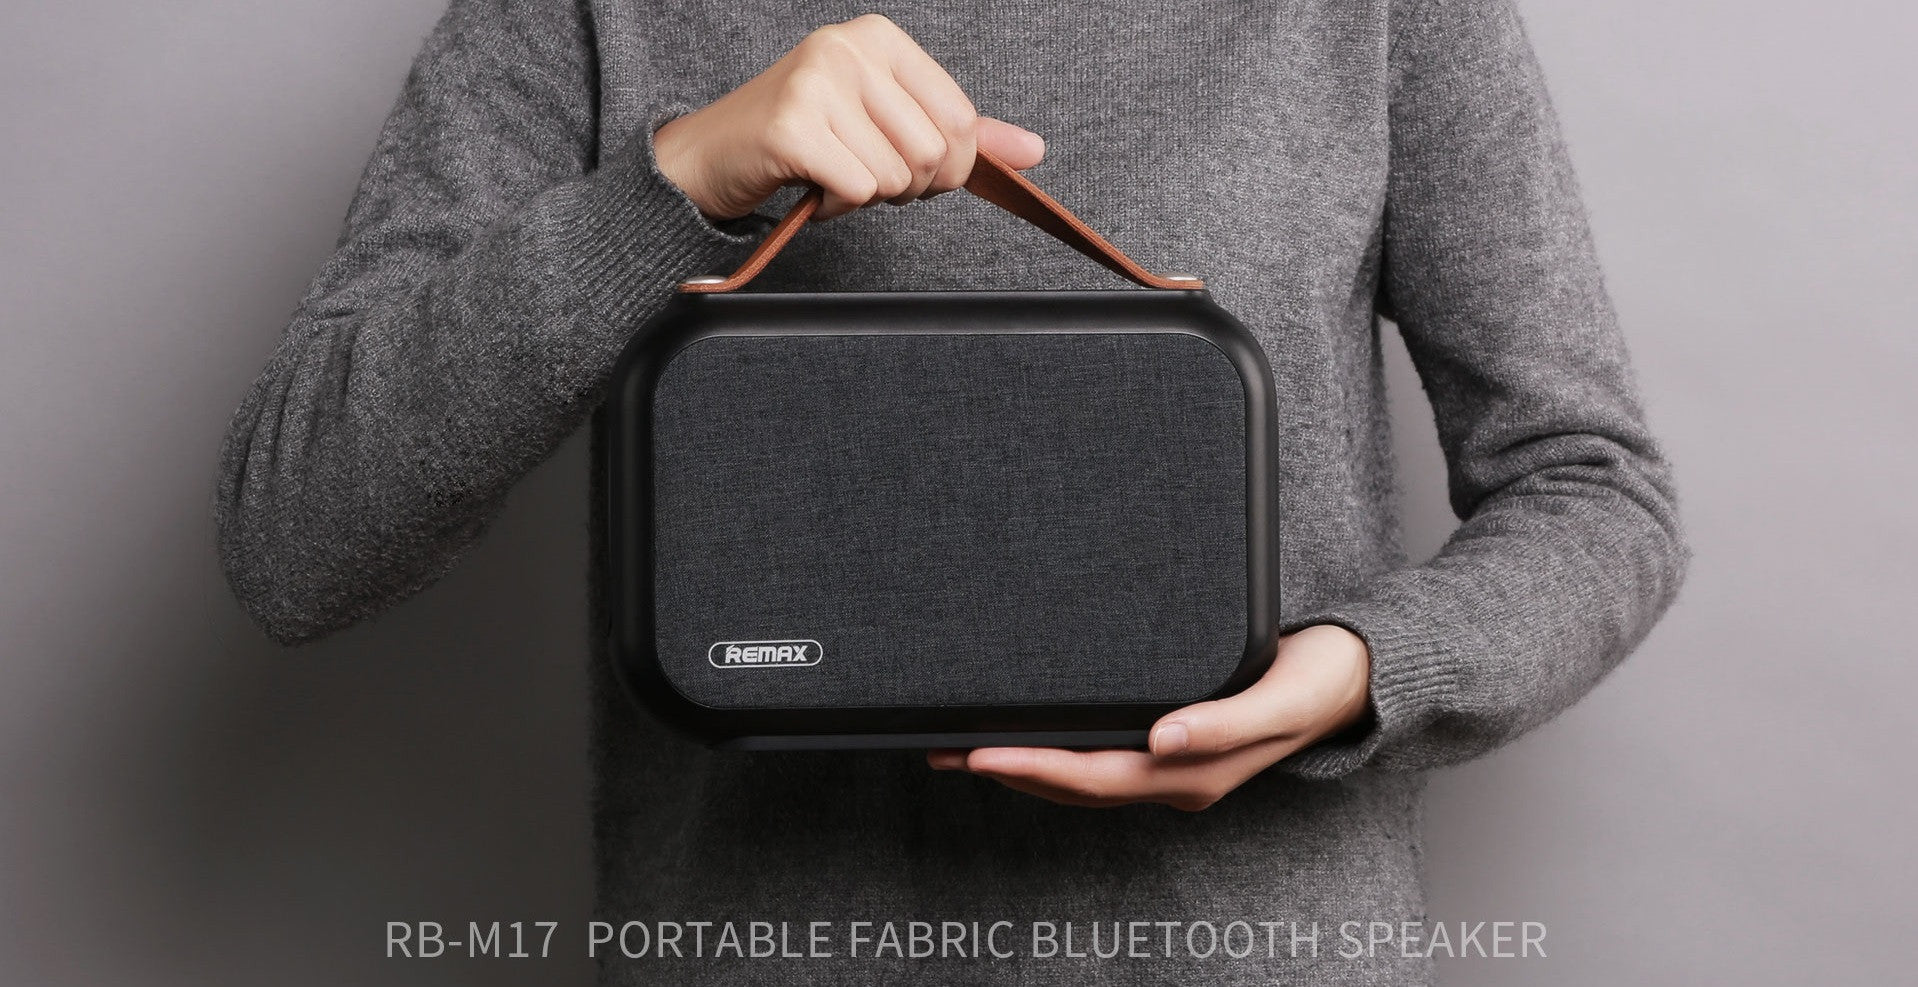 https://www.iremax.com/products/bluetooth-speaker-rb-m17